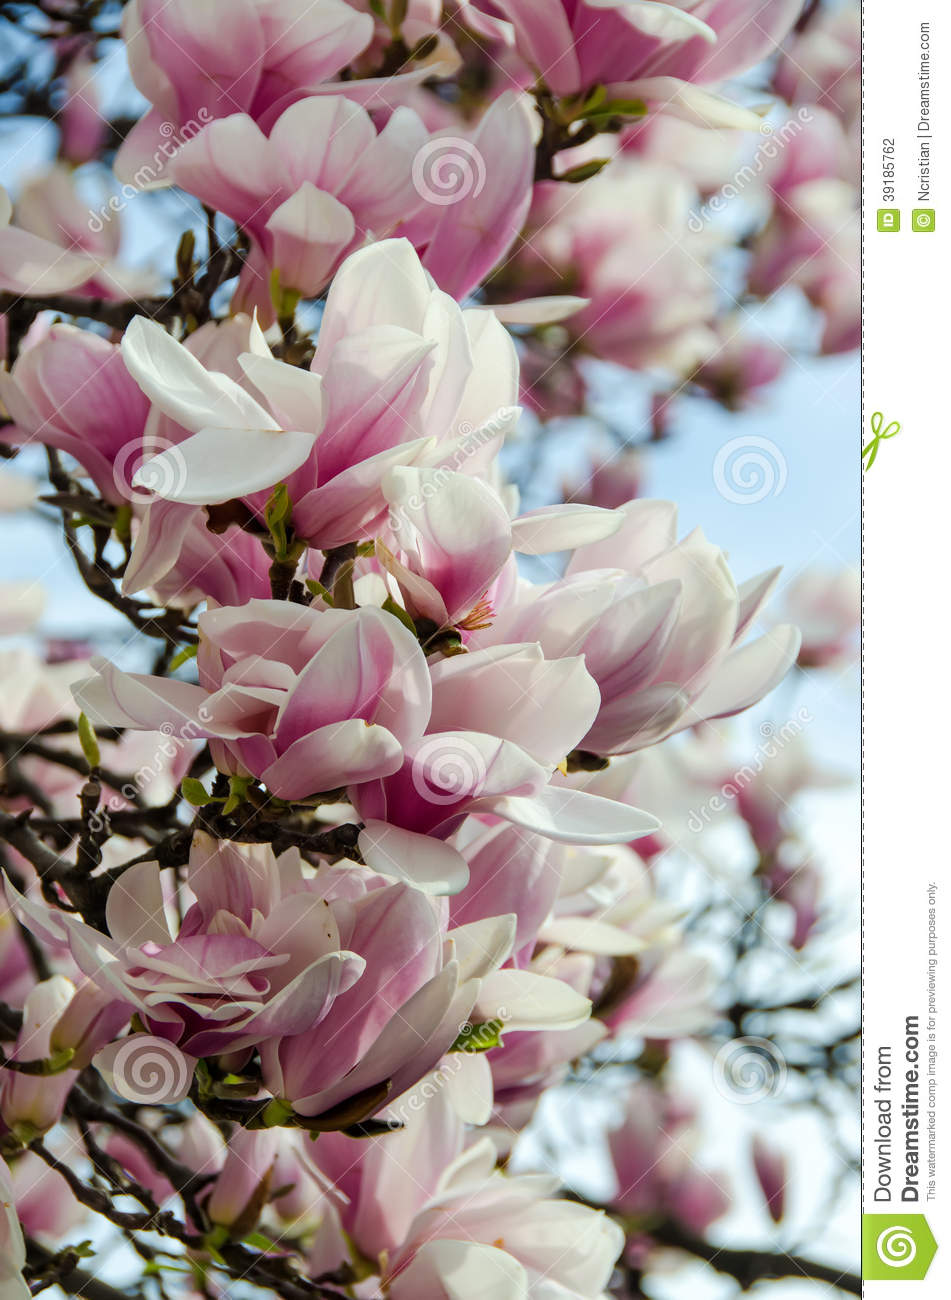 Magnolia White Pink Flowers Stock Photo Image Of Flower Fresh